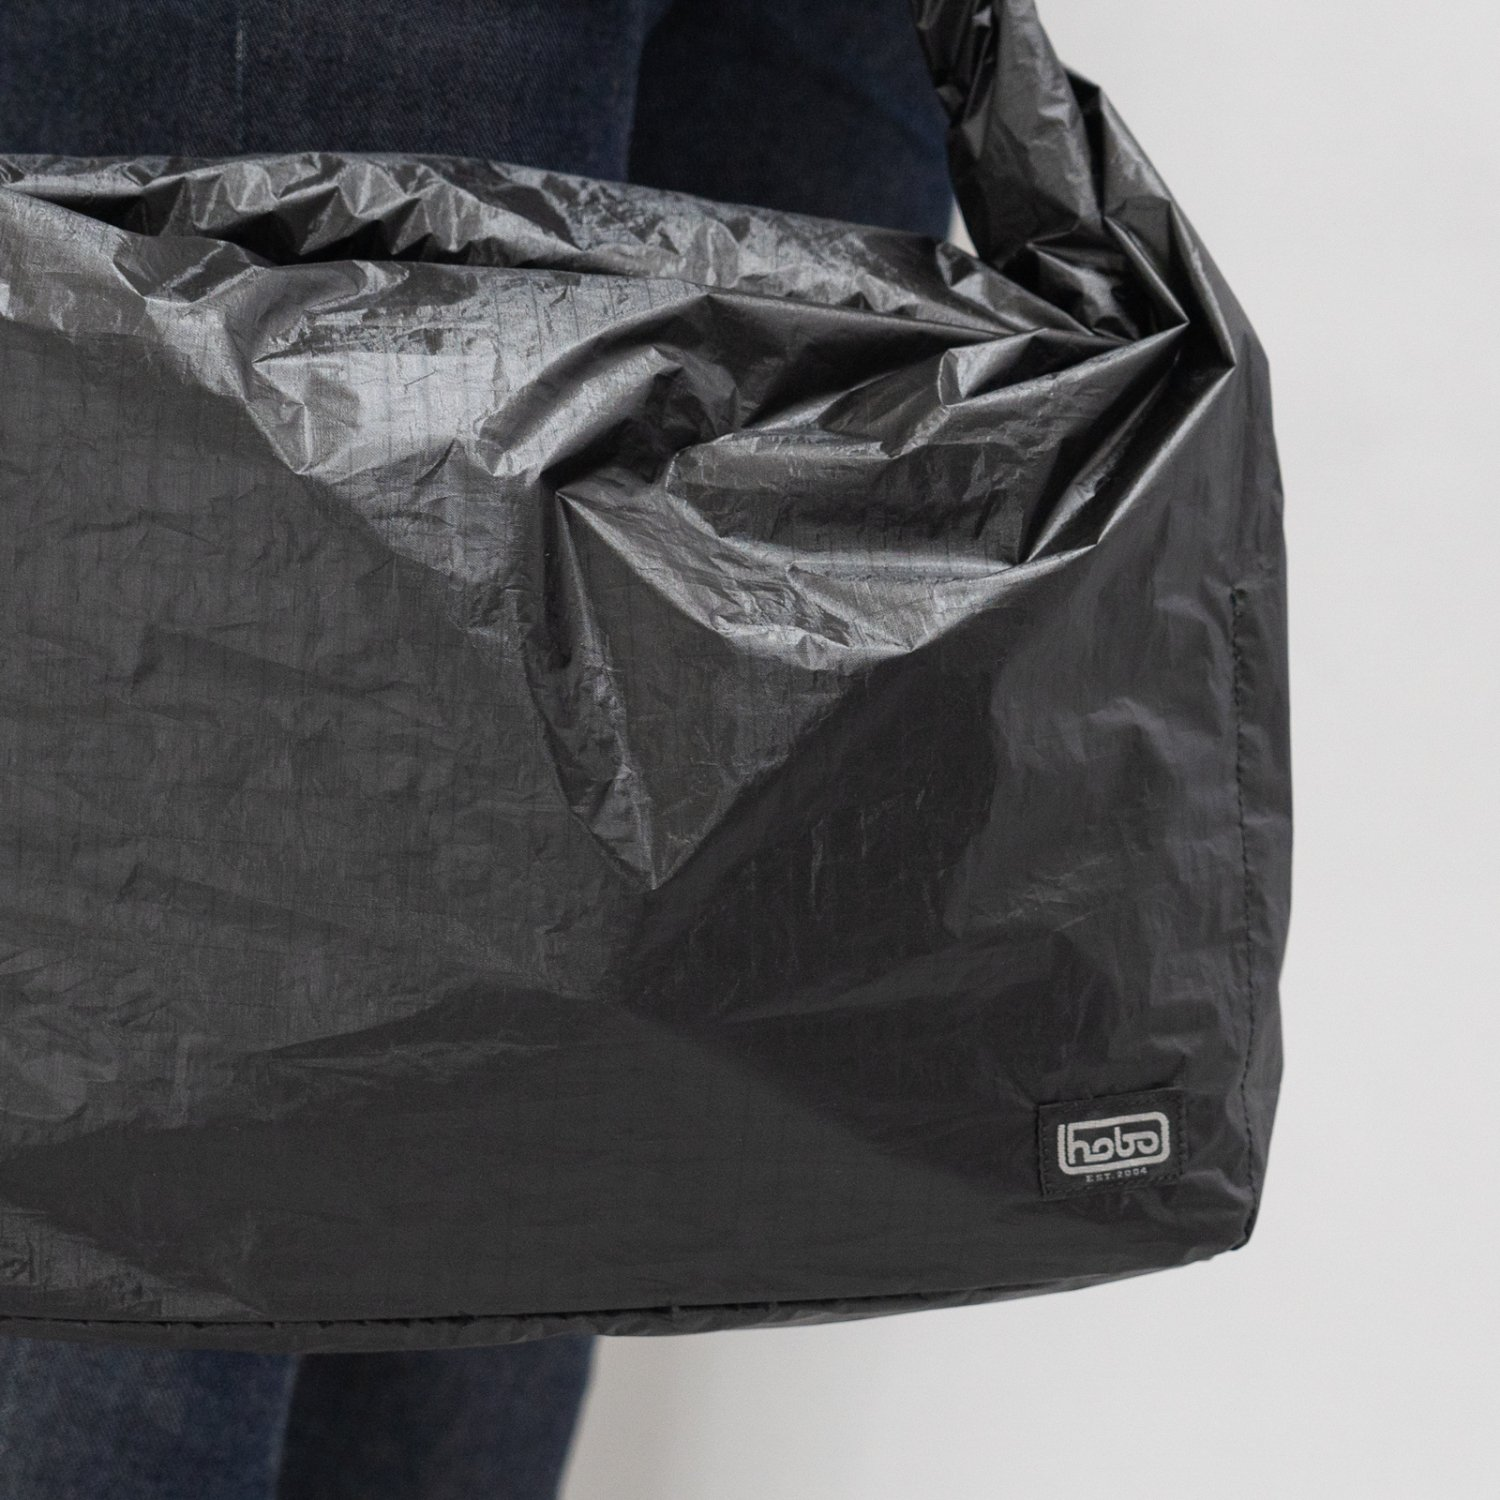 hobo * POWER RIP Polyester Roll Top Bag